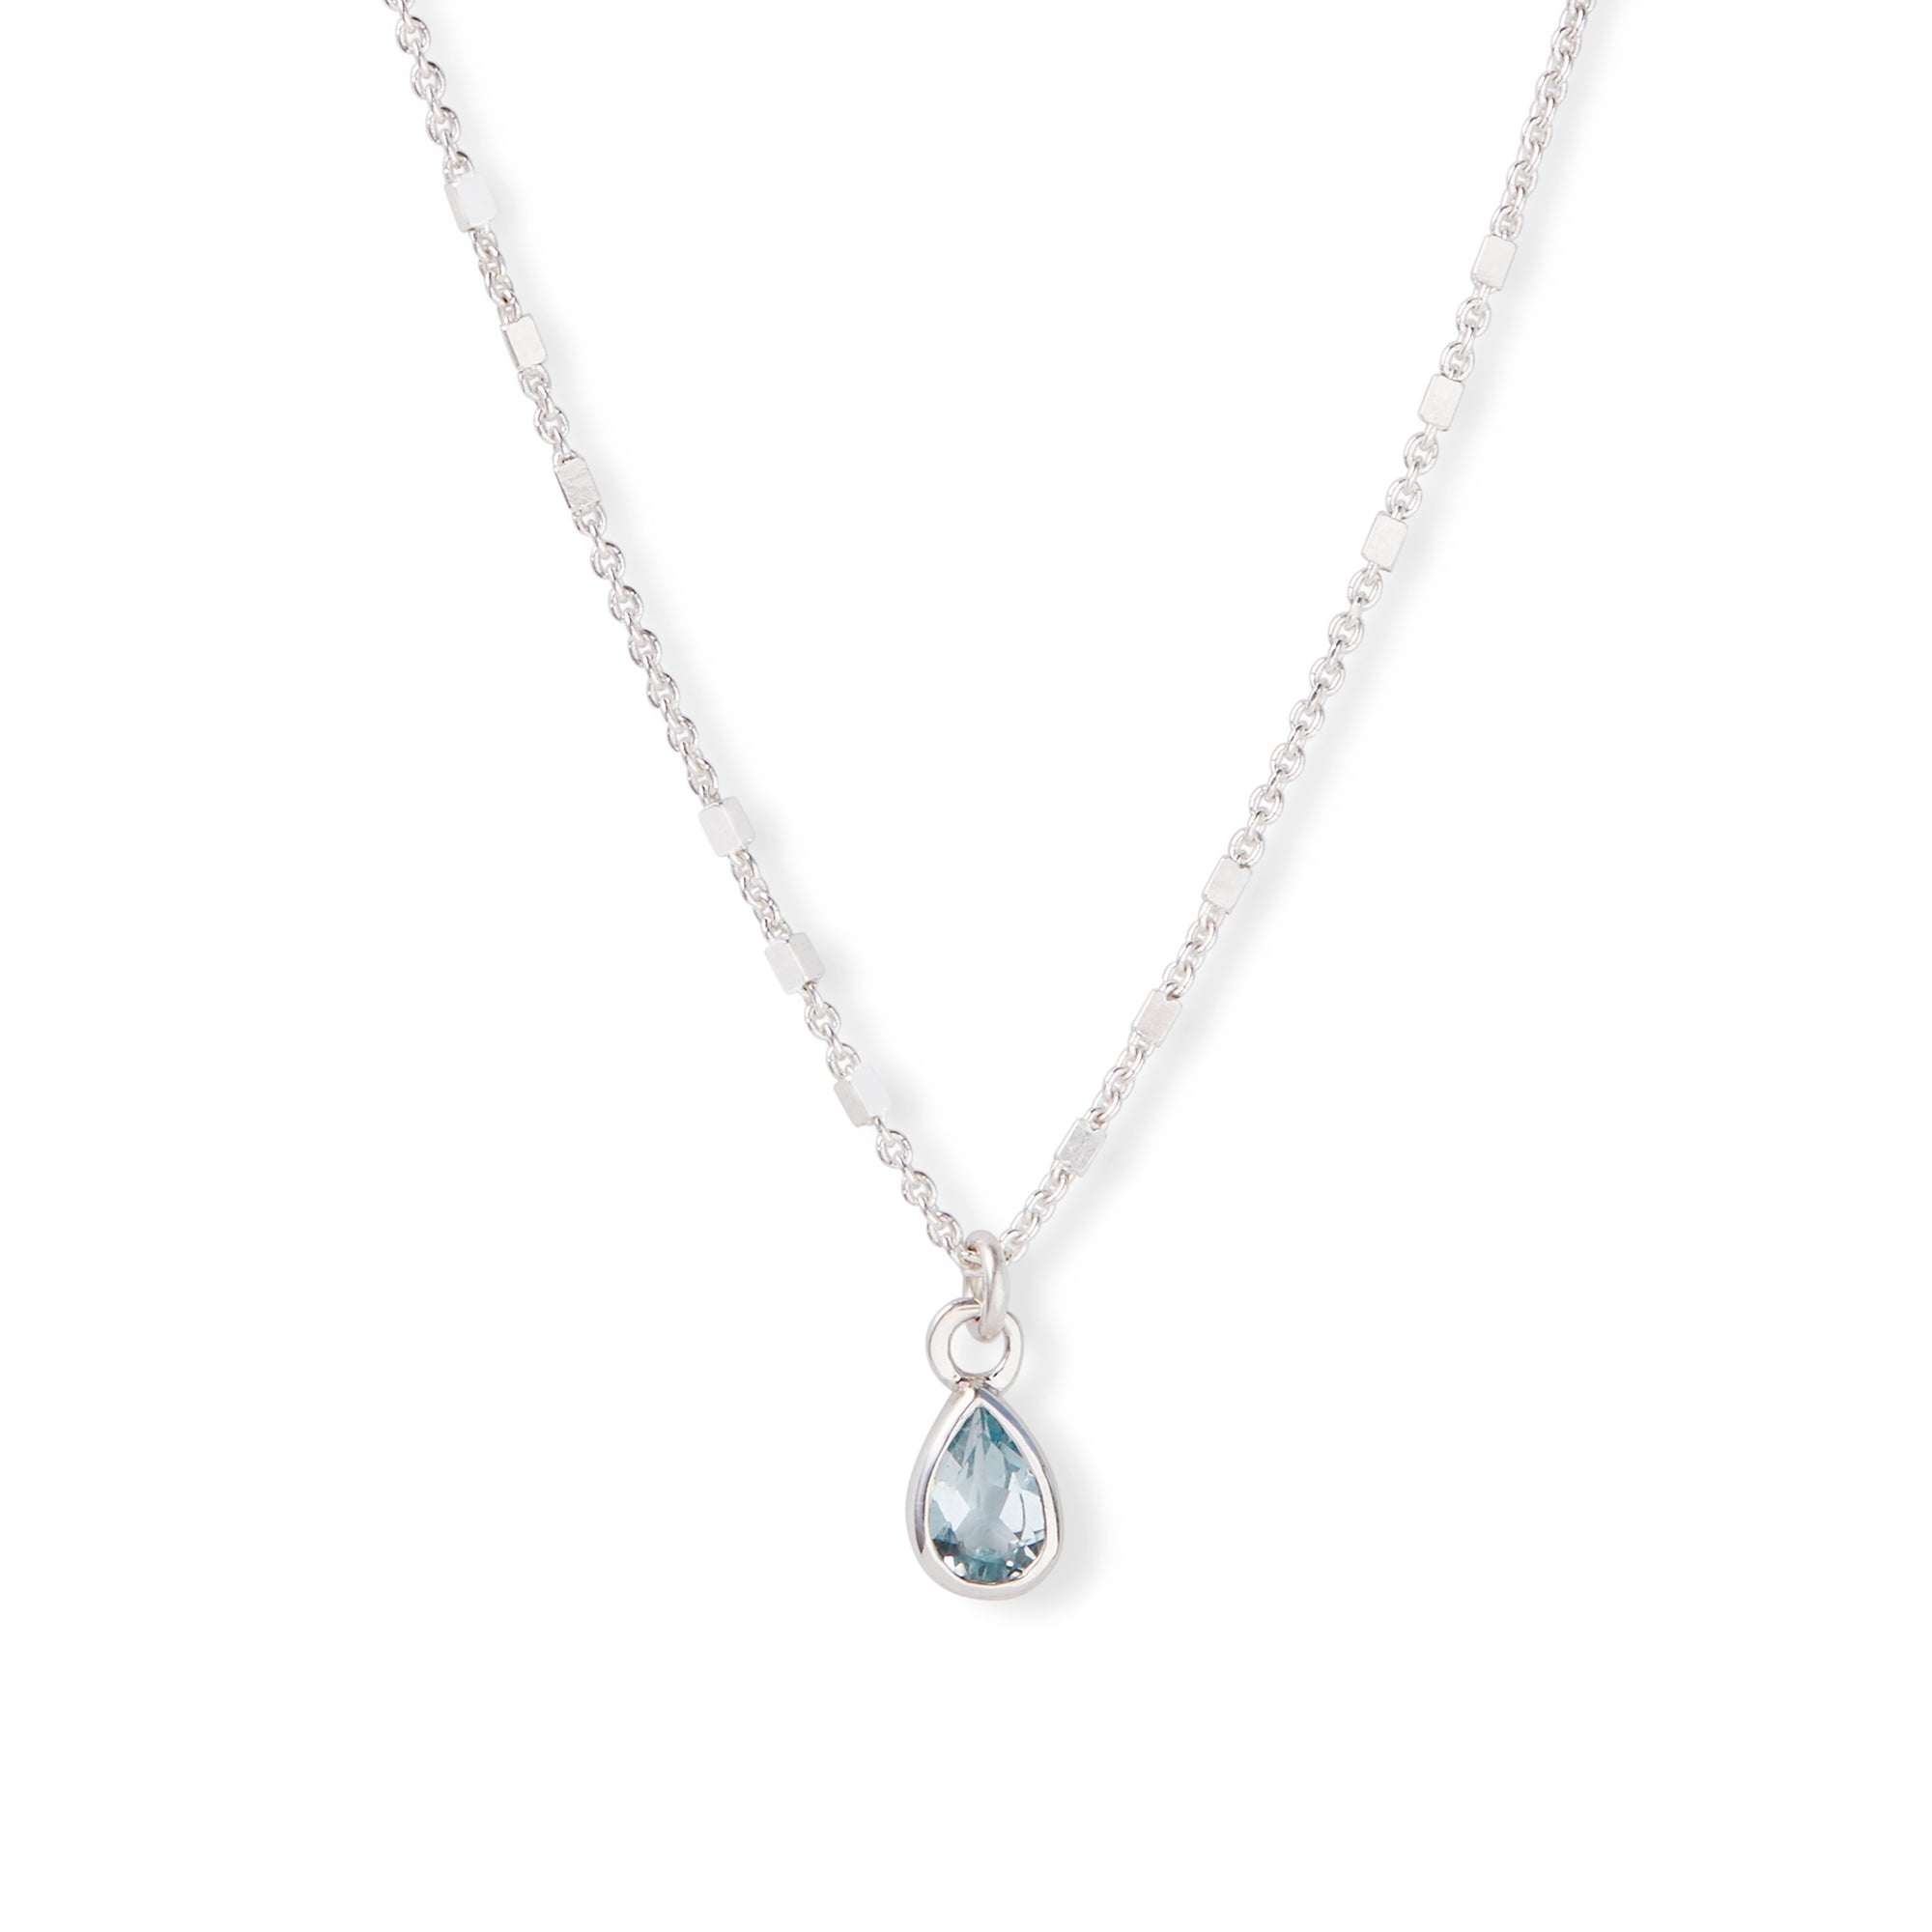 The 6x4 Pear Cut Stone Necklace in Silver